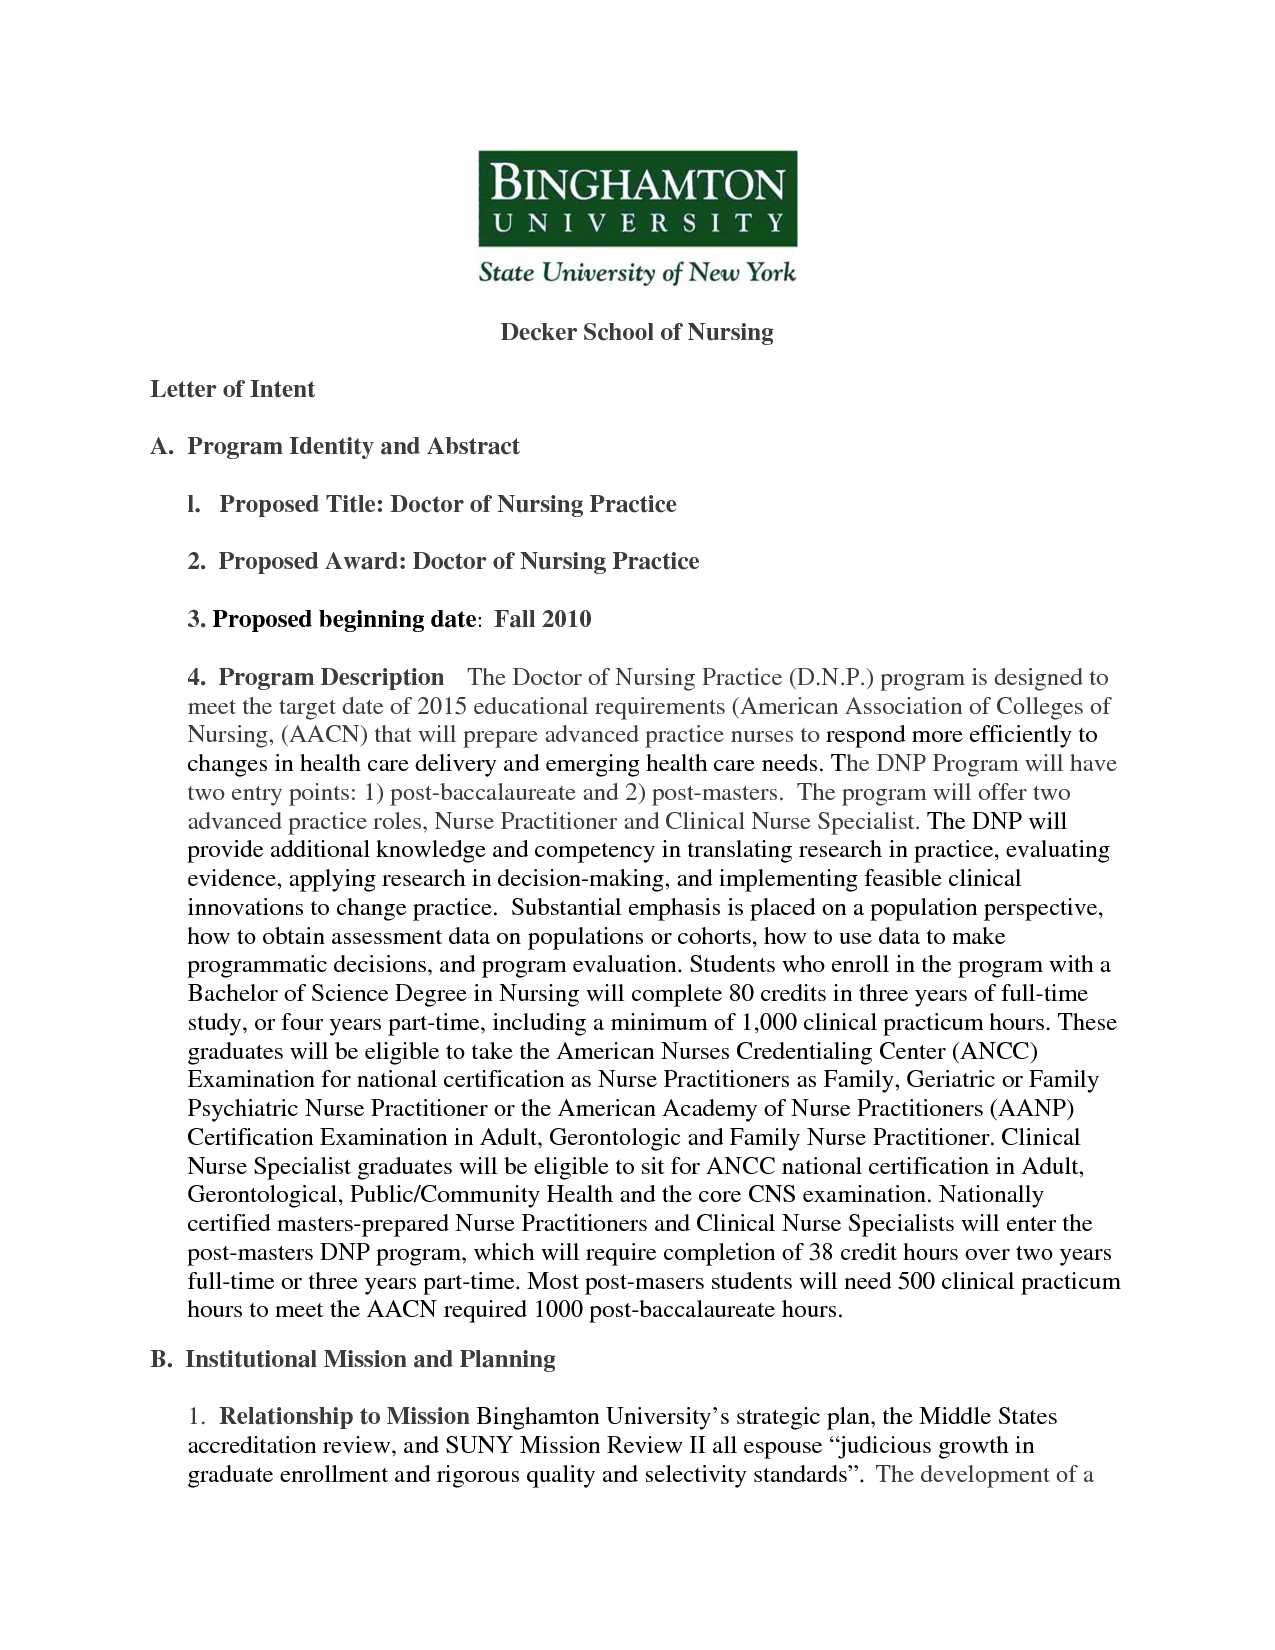 Special Needs Letter Of Intent Template - Examples Letter Intent for Graduate School Ideas Bunch